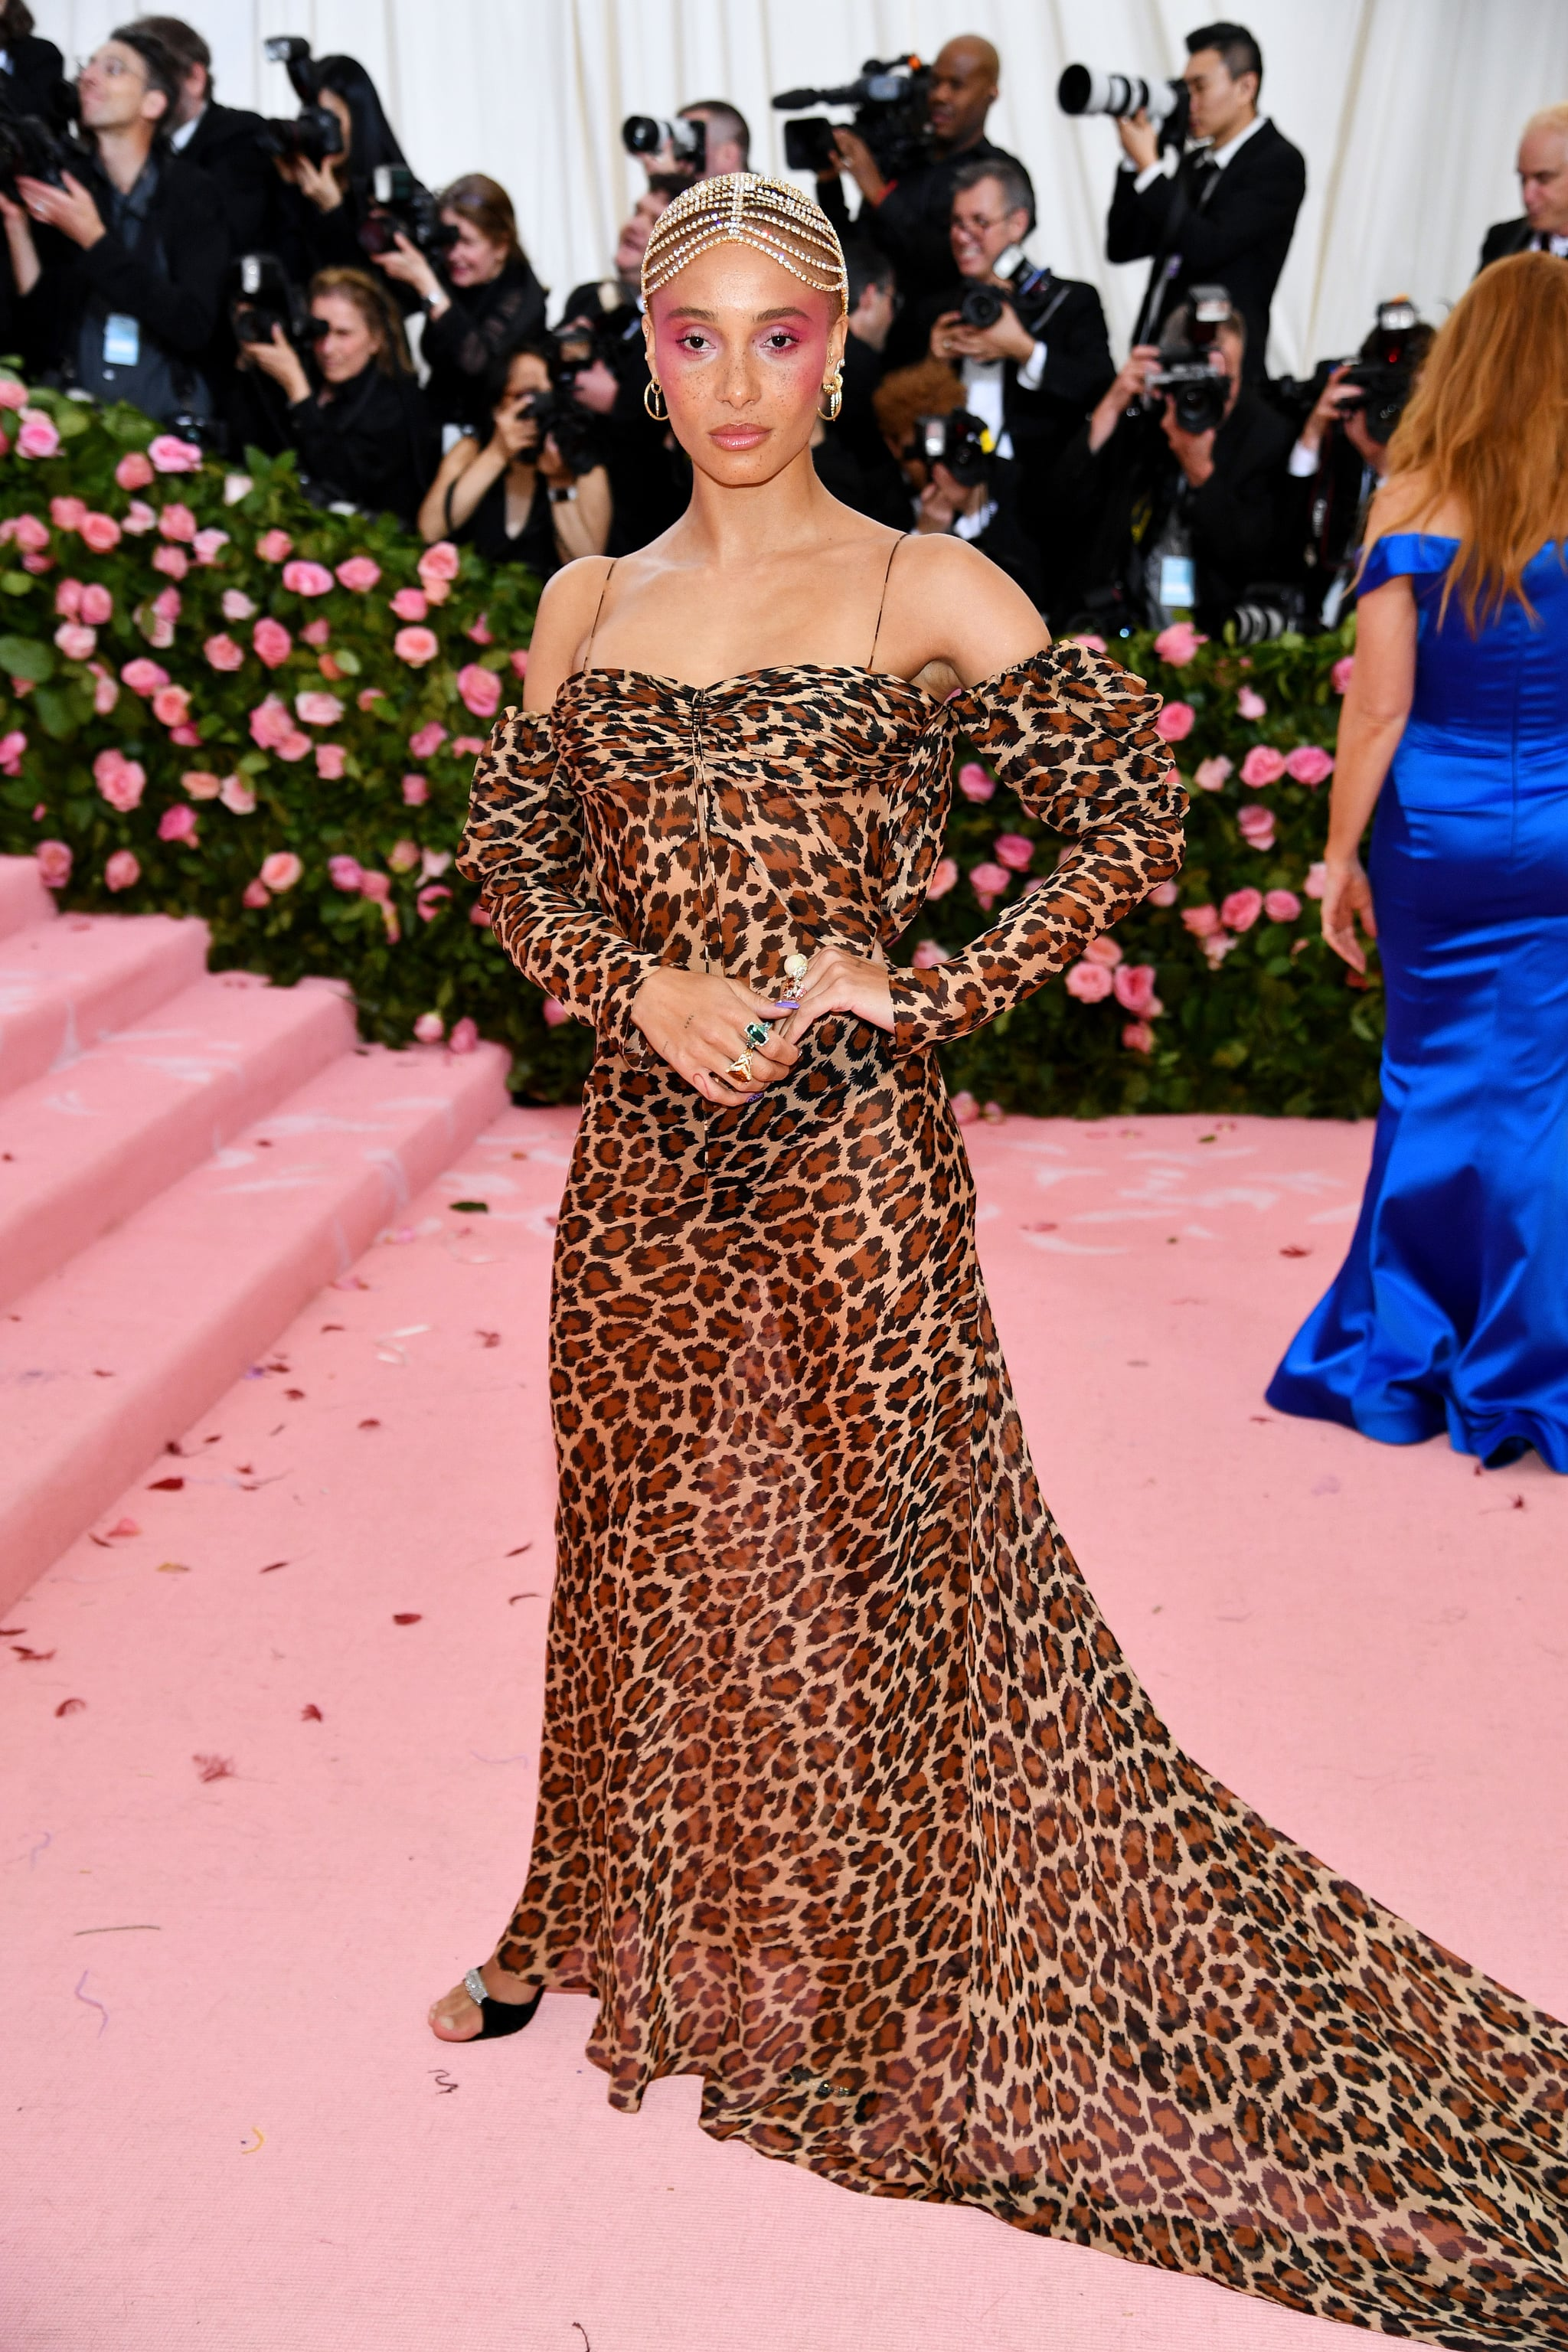 Adwoa Aboah at the 2019 Met Gala | These Met Gala Looks Are Dramatic Enough  to Entertain You For the Rest of the Year | POPSUGAR Fashion Photo 179